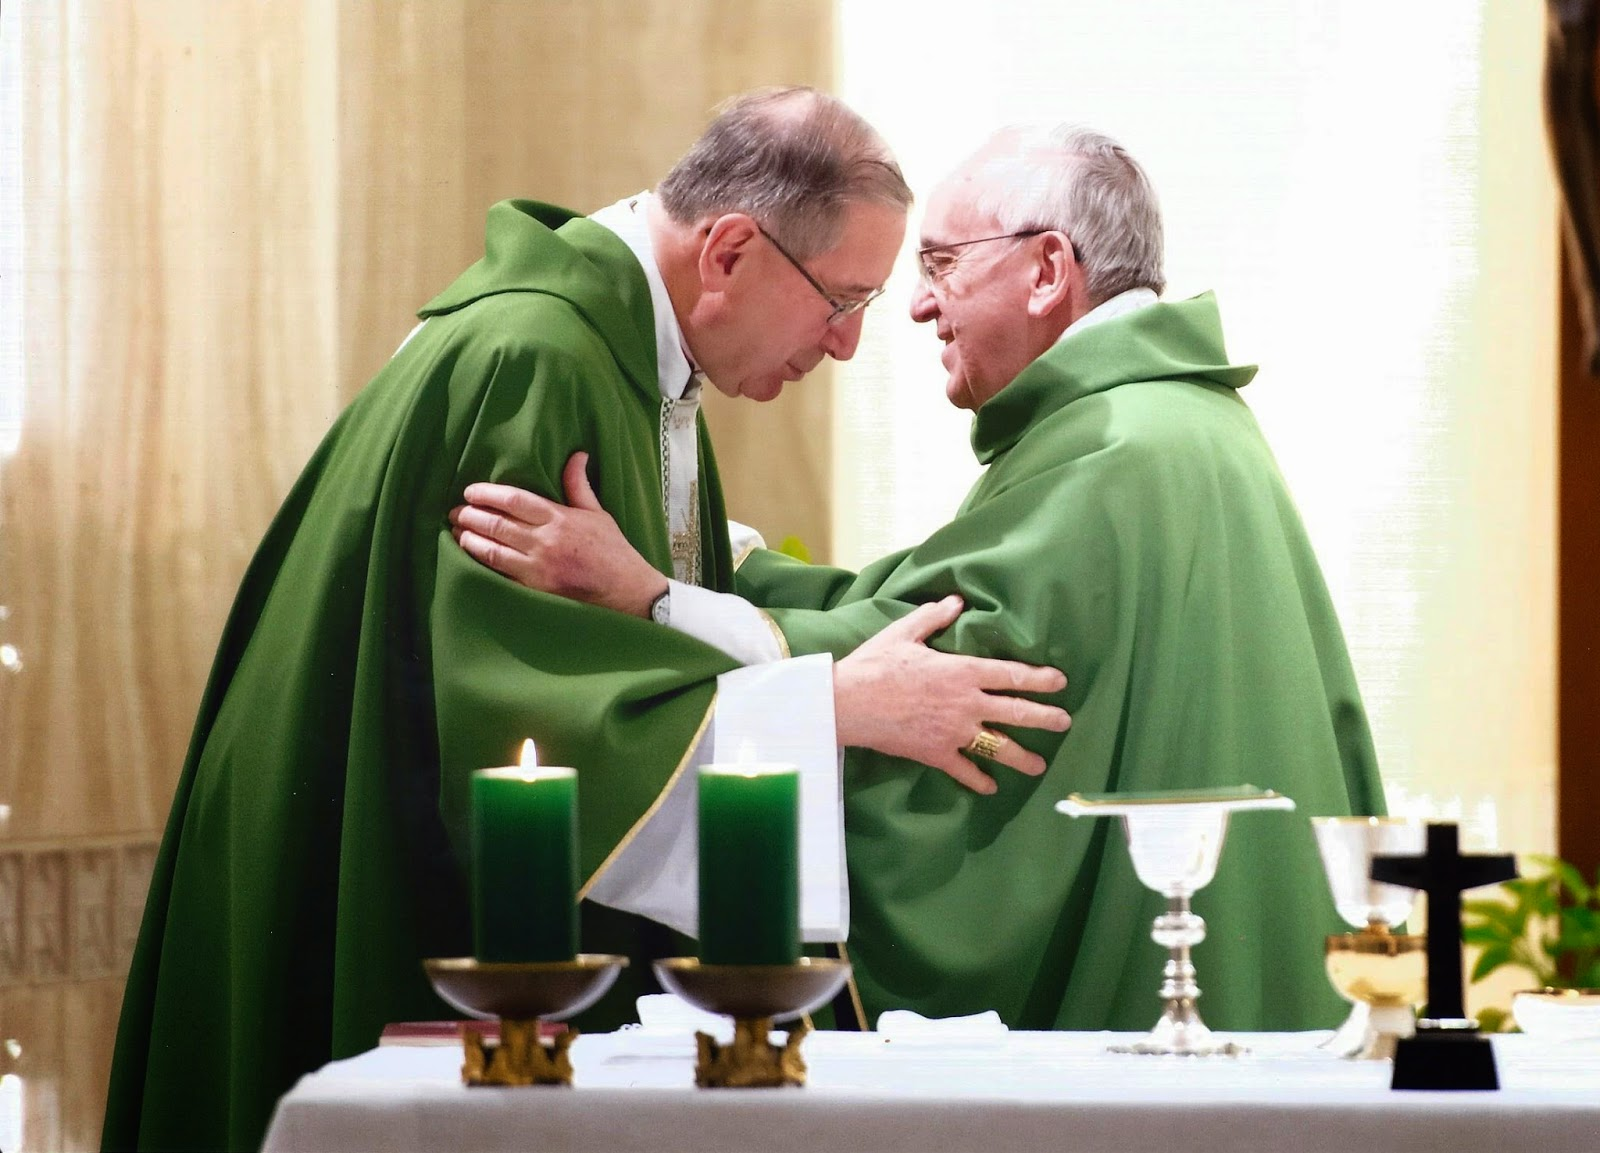 Cardinal Mahony concelebrates Mass with Pope Francis at Domus Sanctae Martae on January 16, 2014